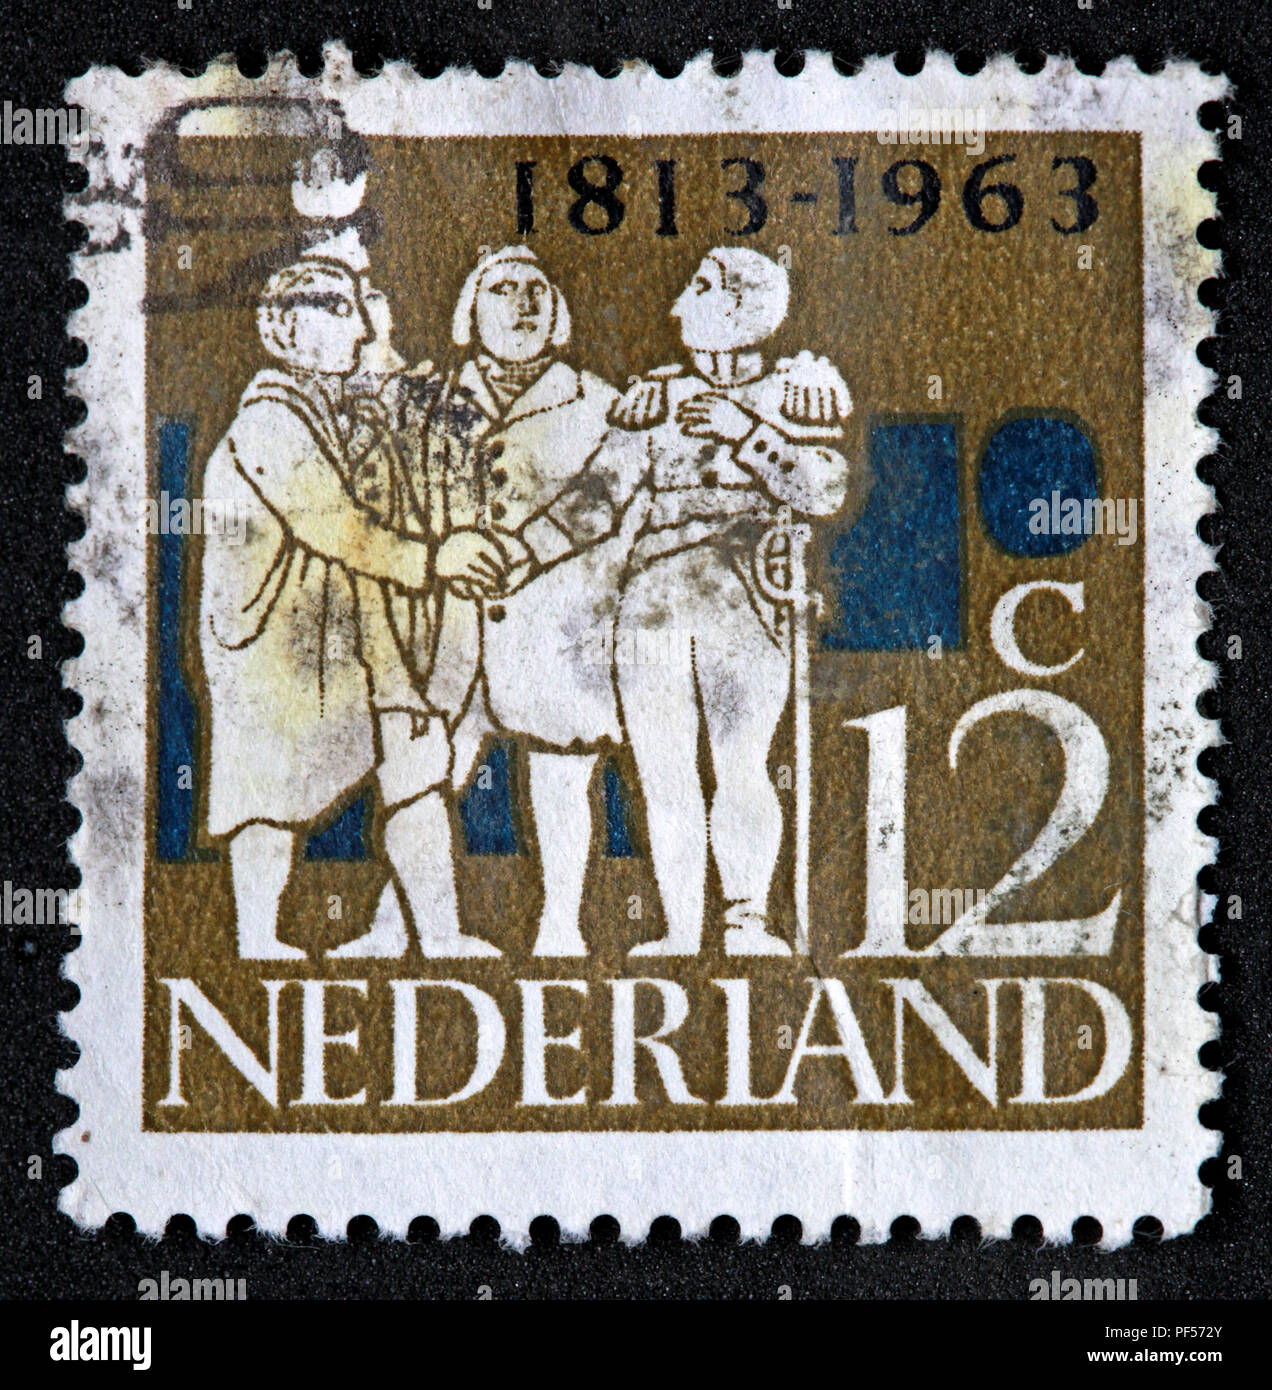 Used franked Nederland Netherlands Stamp, Brown 12c Twelve Cent 1813-1963 - Stock Image